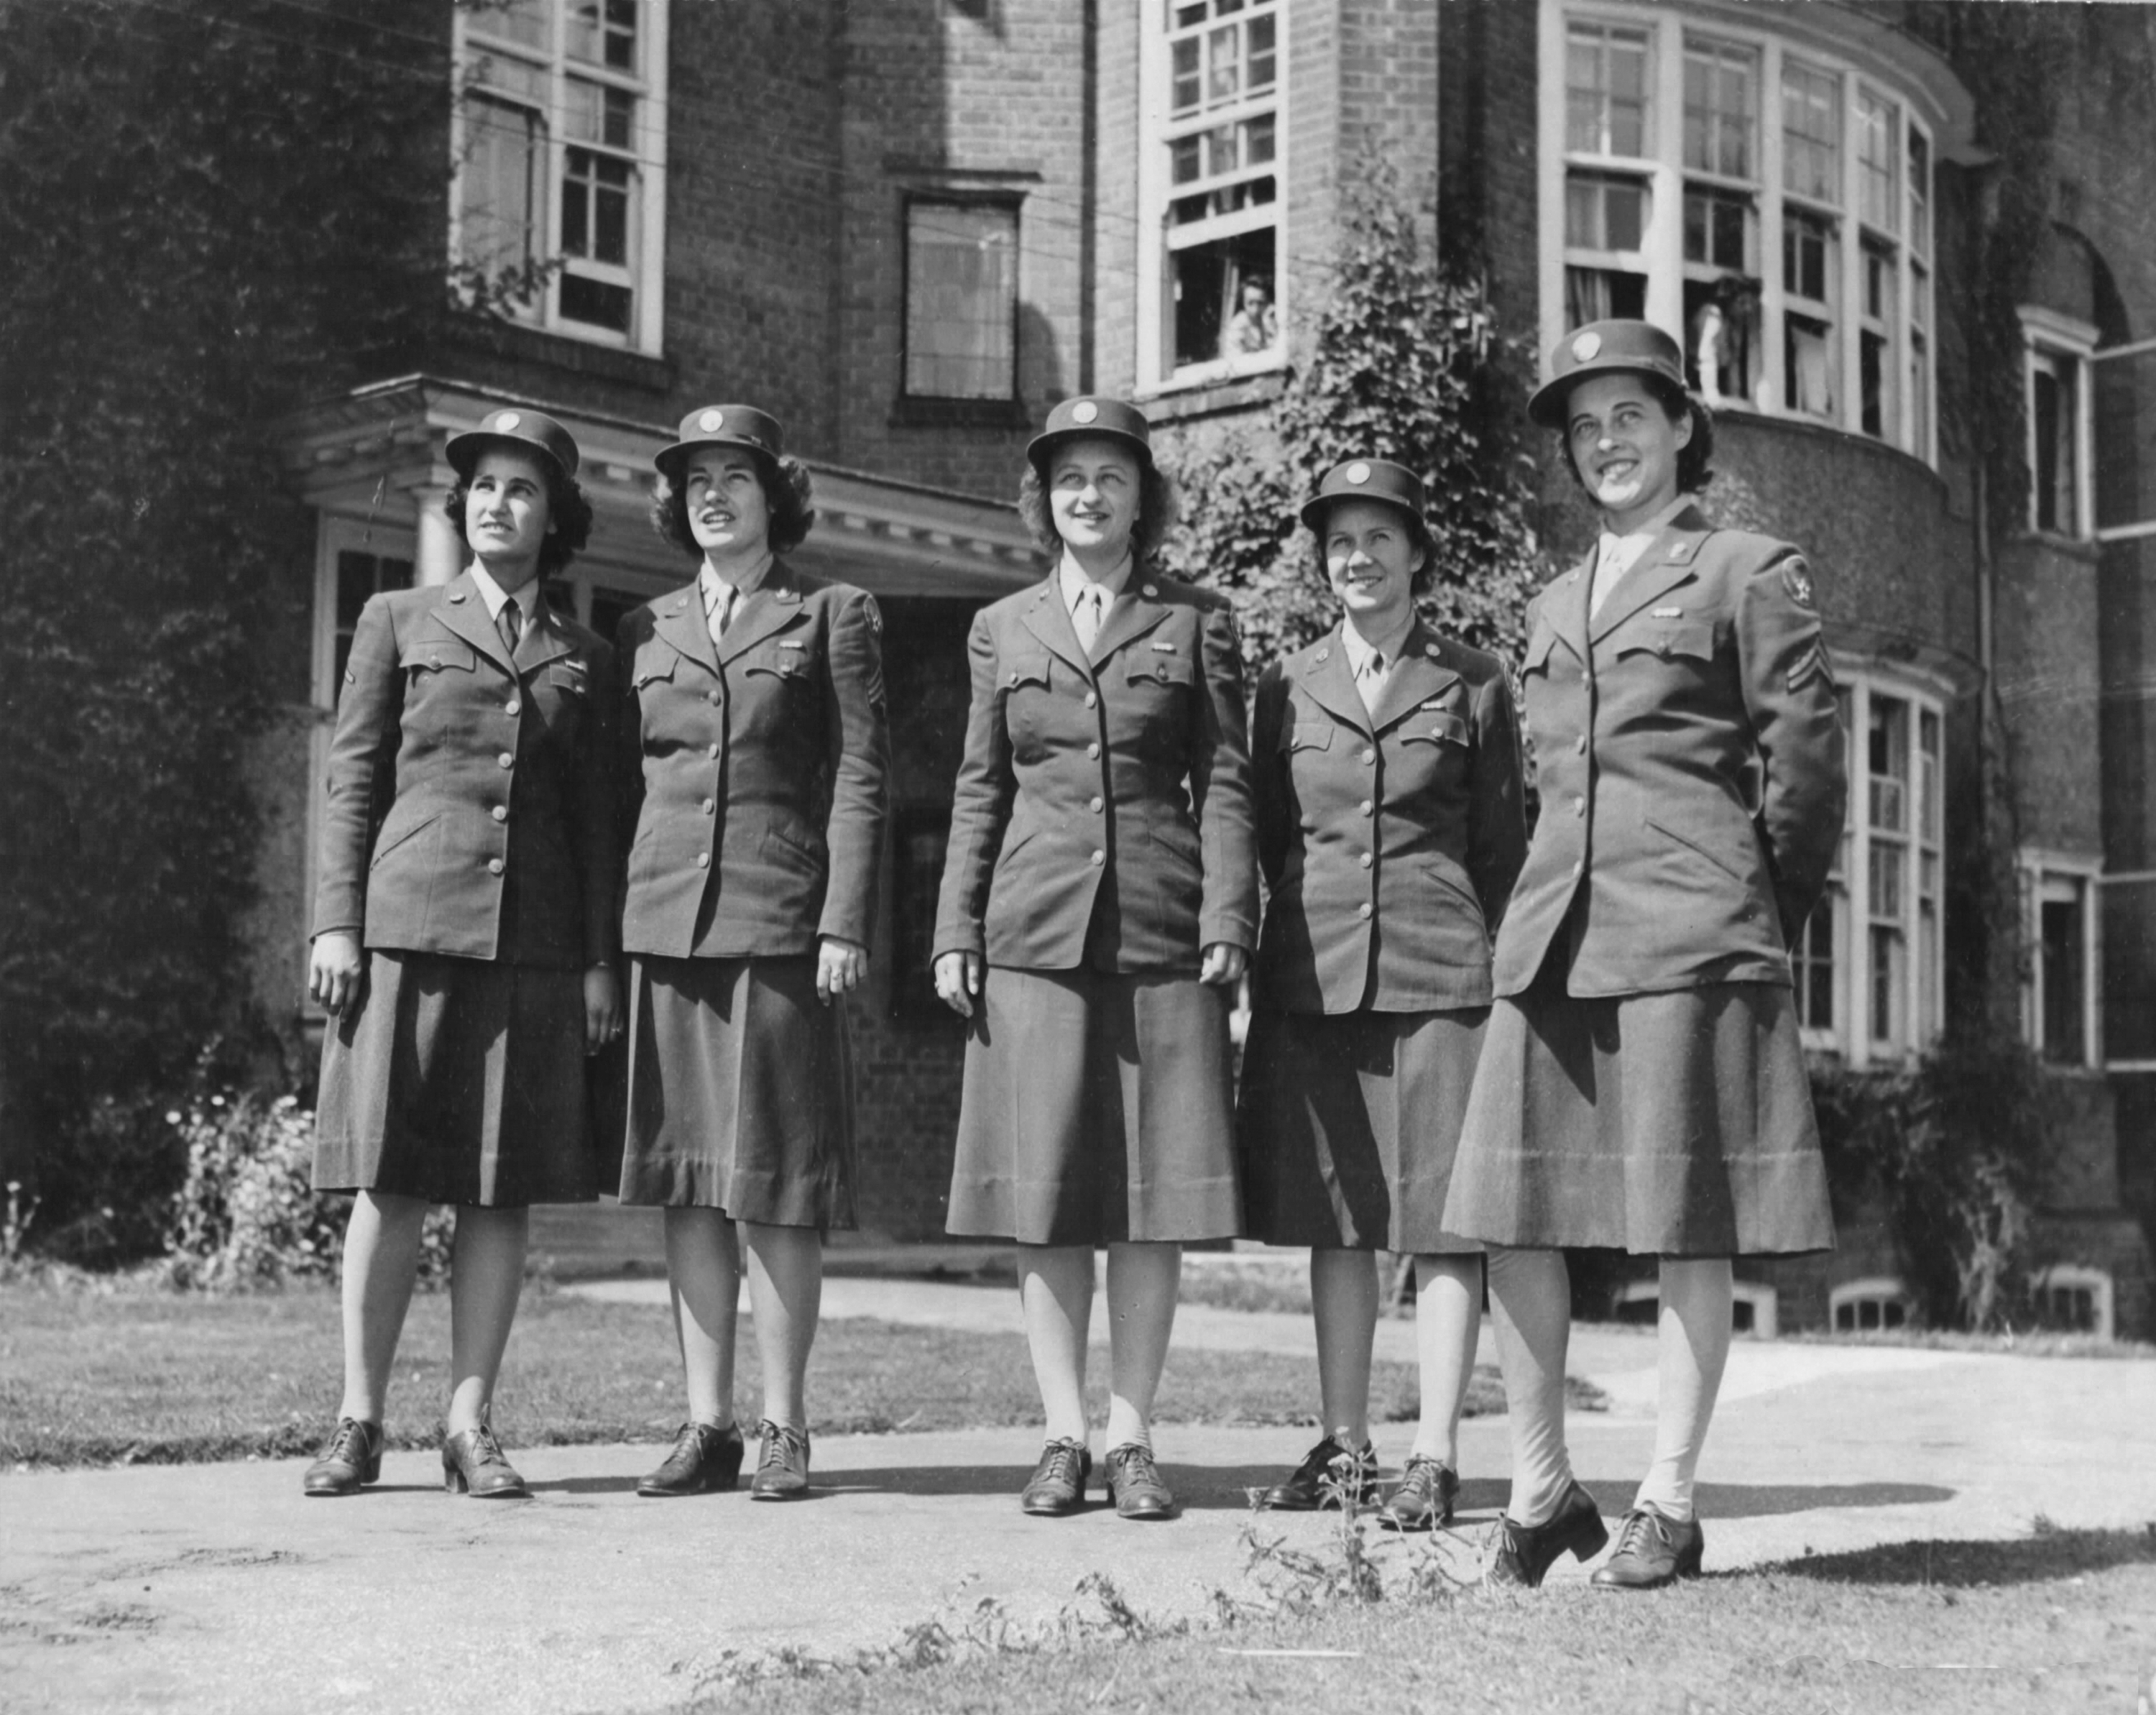 Arrival of WACs at Bomber Command in England